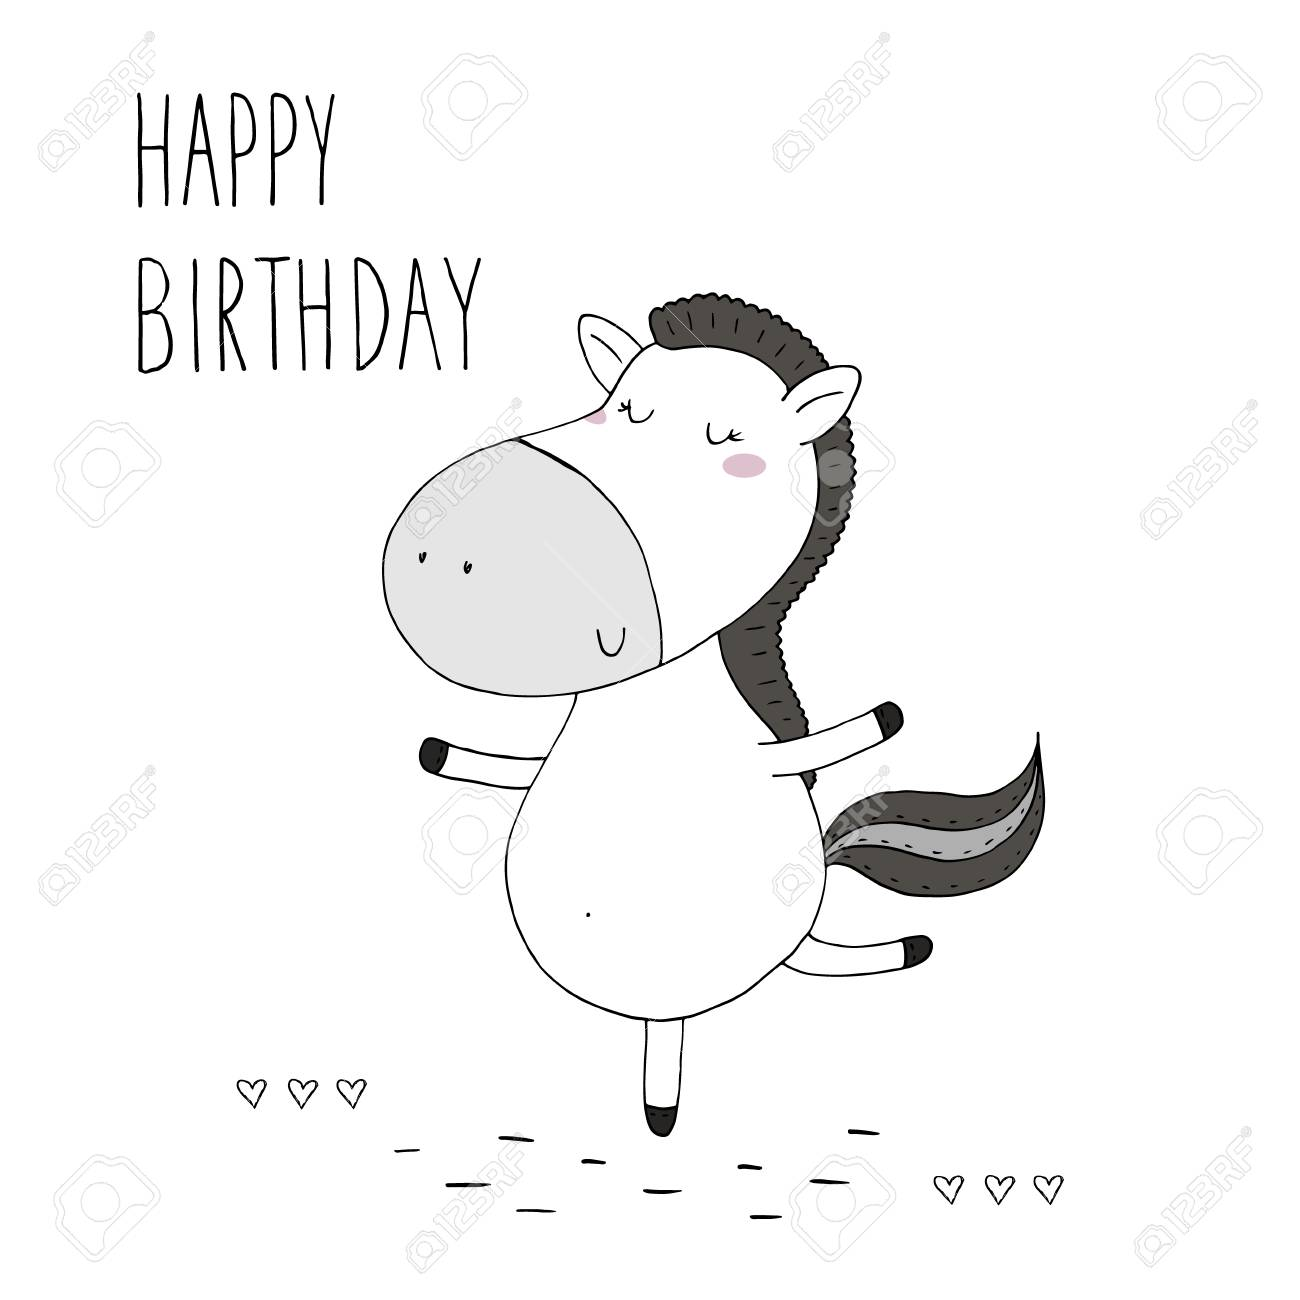 Happy Birthday Card With Cute Hand Drawn Funny Horse Royalty Free Cliparts Vectors And Stock Illustration Image 87904918